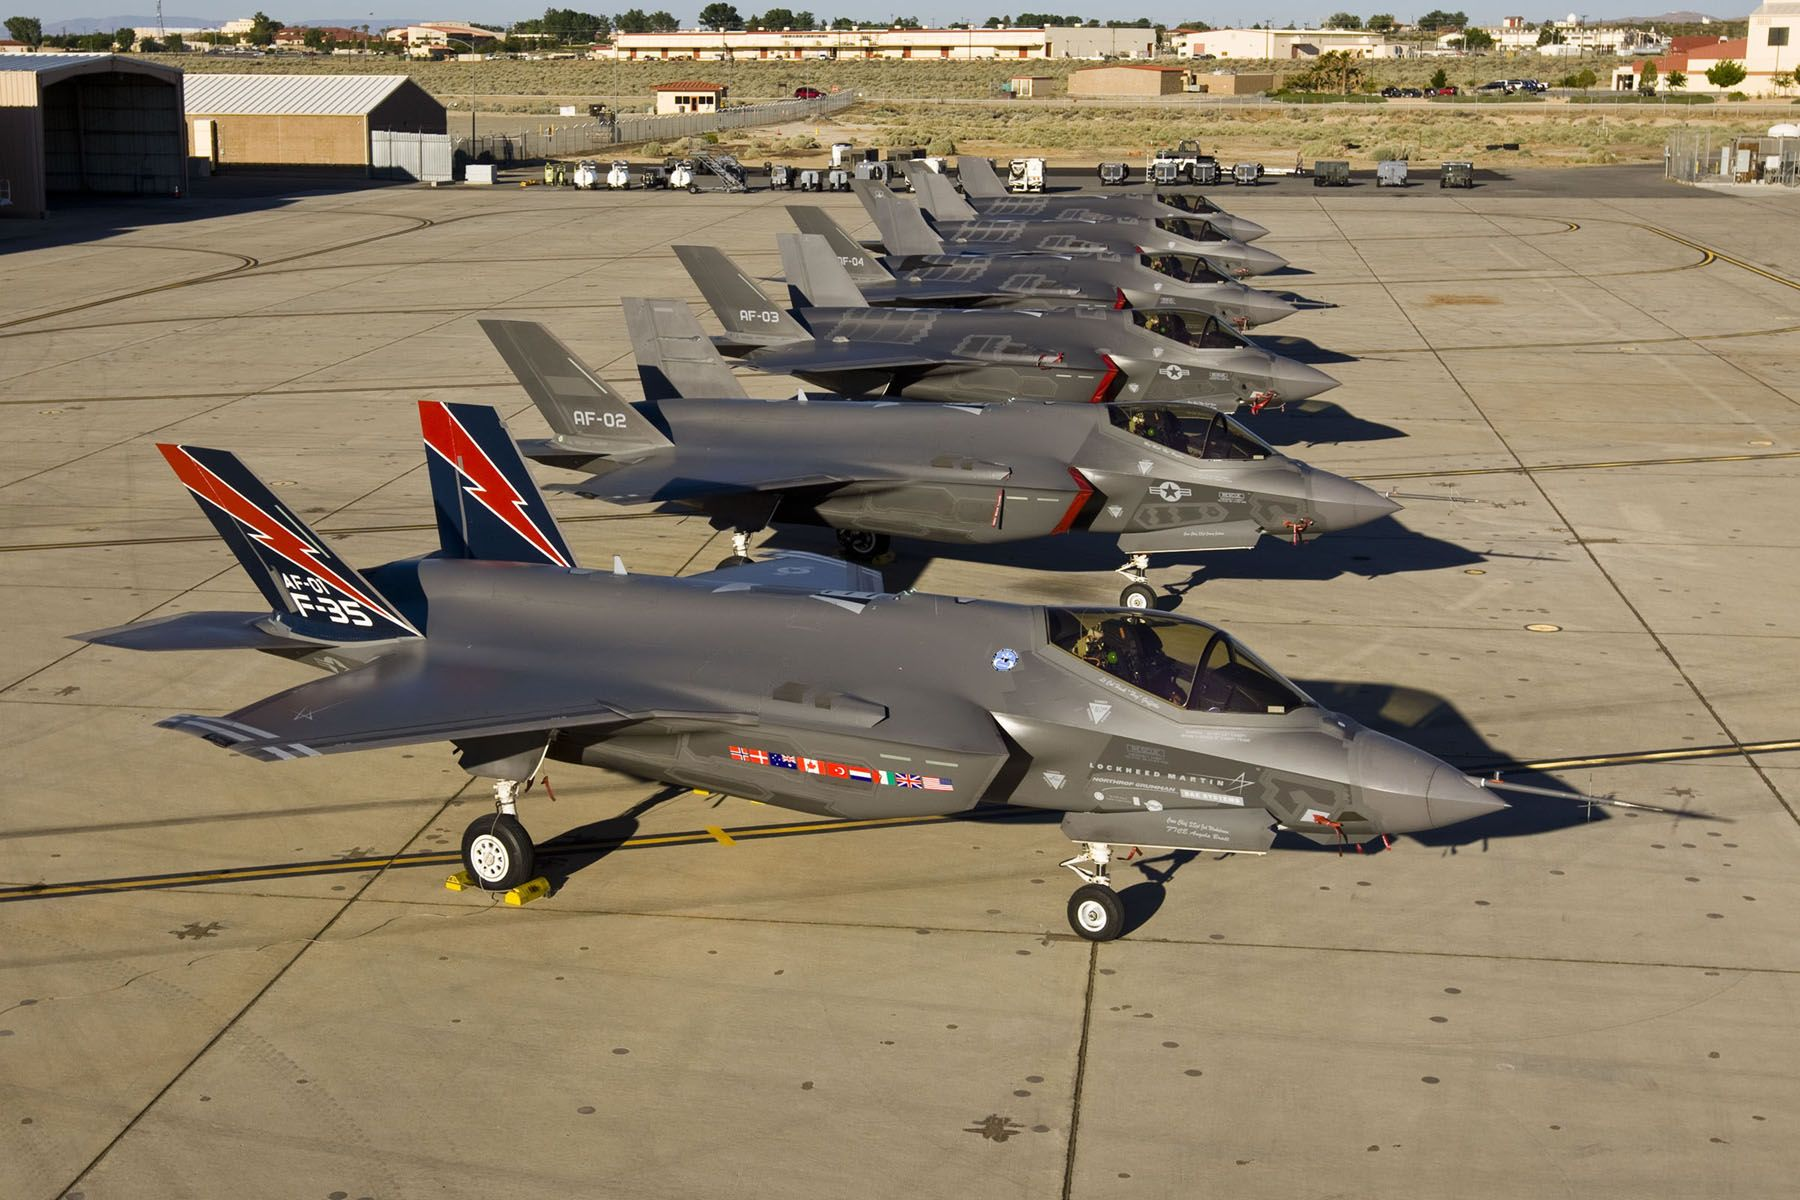 F-35_of_United_States_Air_Force_Lined_Up.jpg (1800×1200)